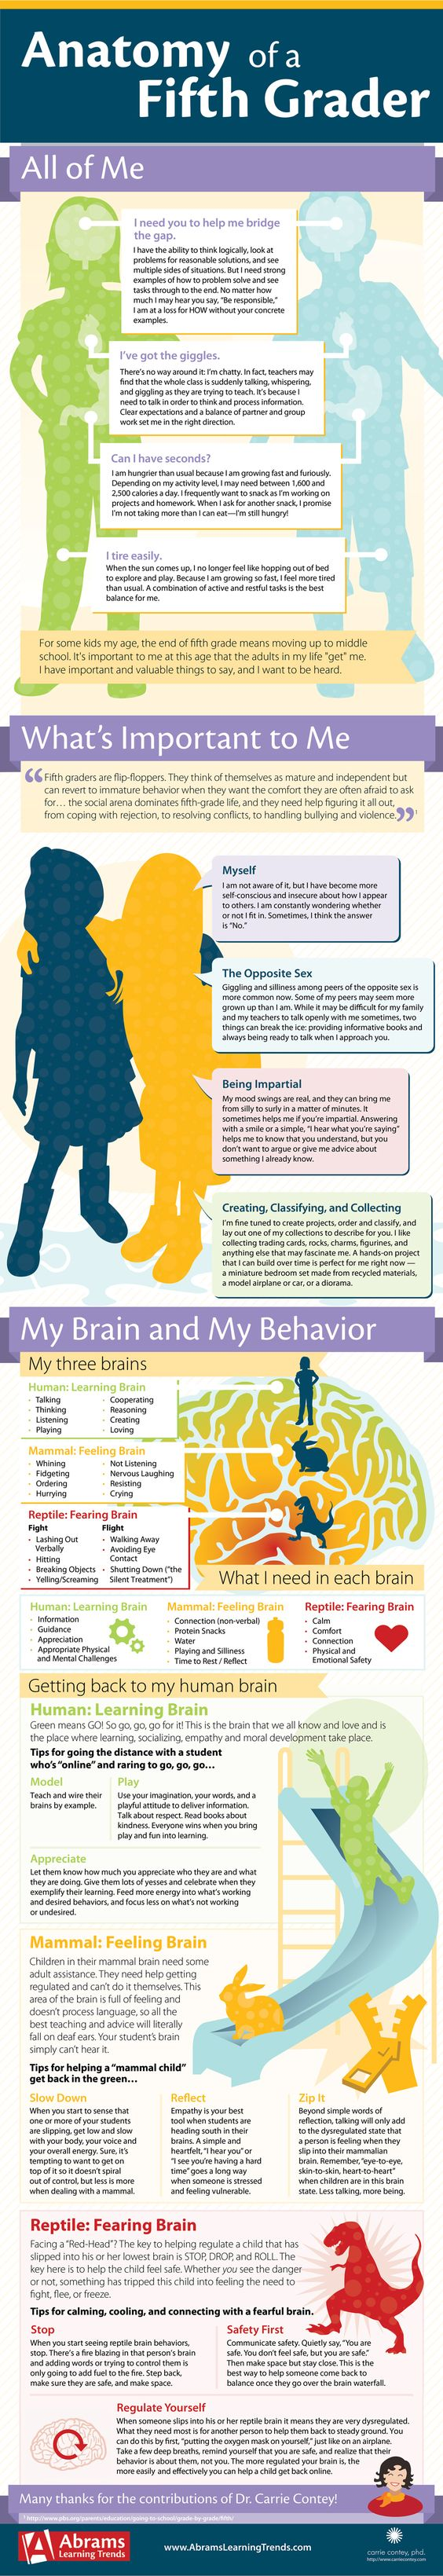 #Infographic with physical, social, cognitive, and emotional norms for #fifthgrade. Very helpful! Usually the oldest student group of the elementary campus, fifth graders keep the adults in the room on their toes. From serious to silly to surly in a matter of minutes, fifth grade can be a time of great physical and emotional flux.